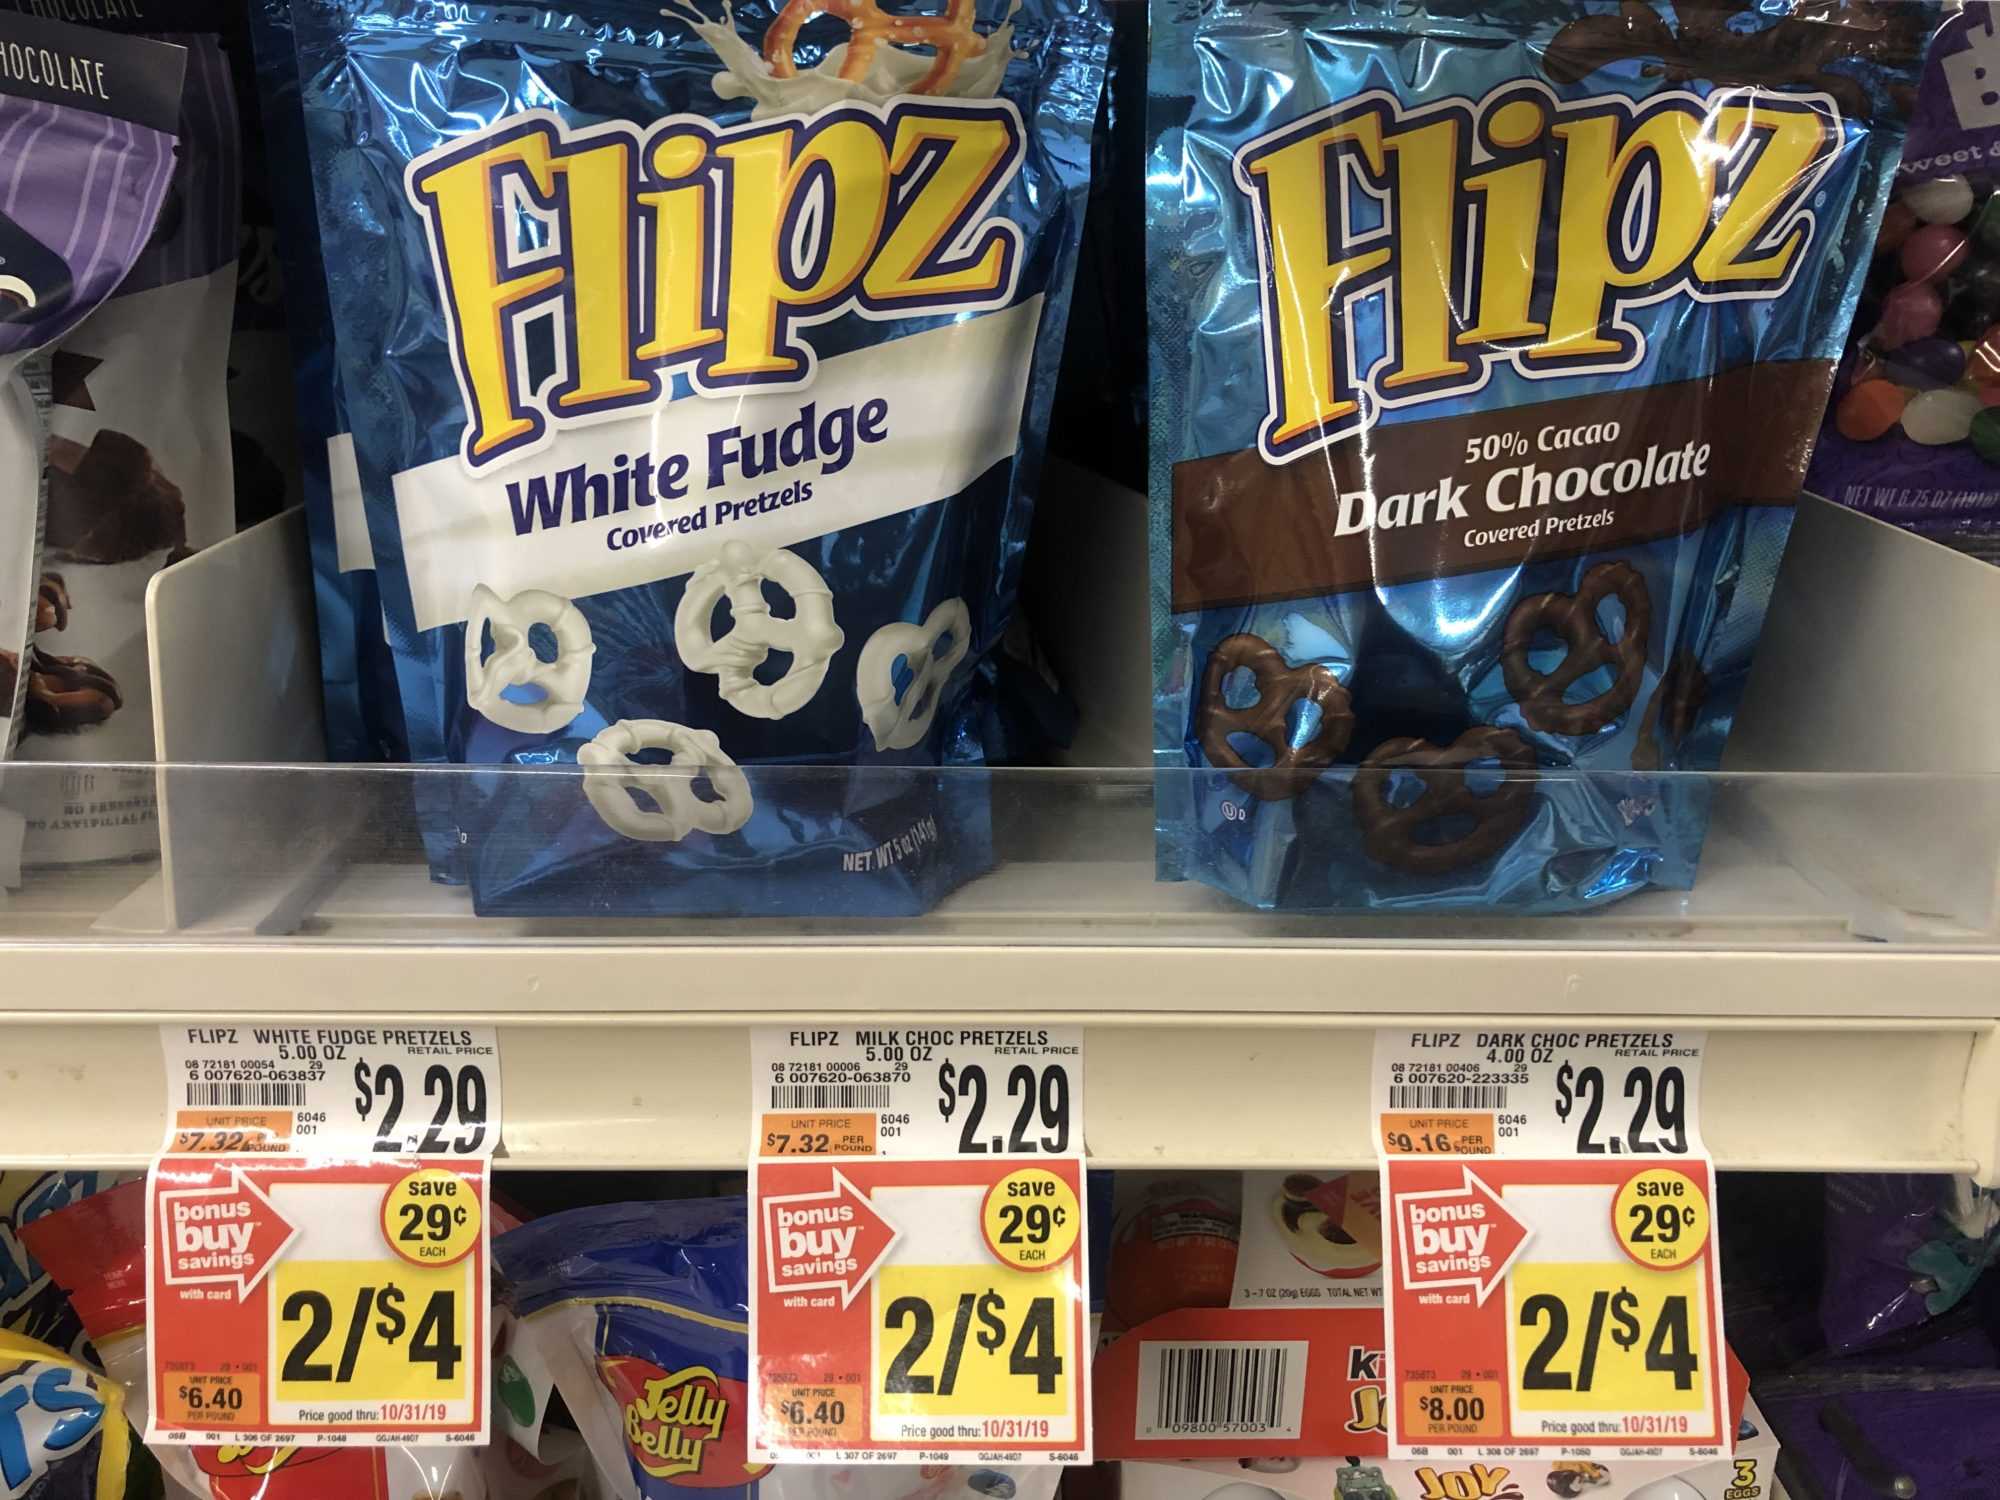 Giant: Flipz Chocolate Covered Pretzels Just $1.25 Each Starting 8/16!